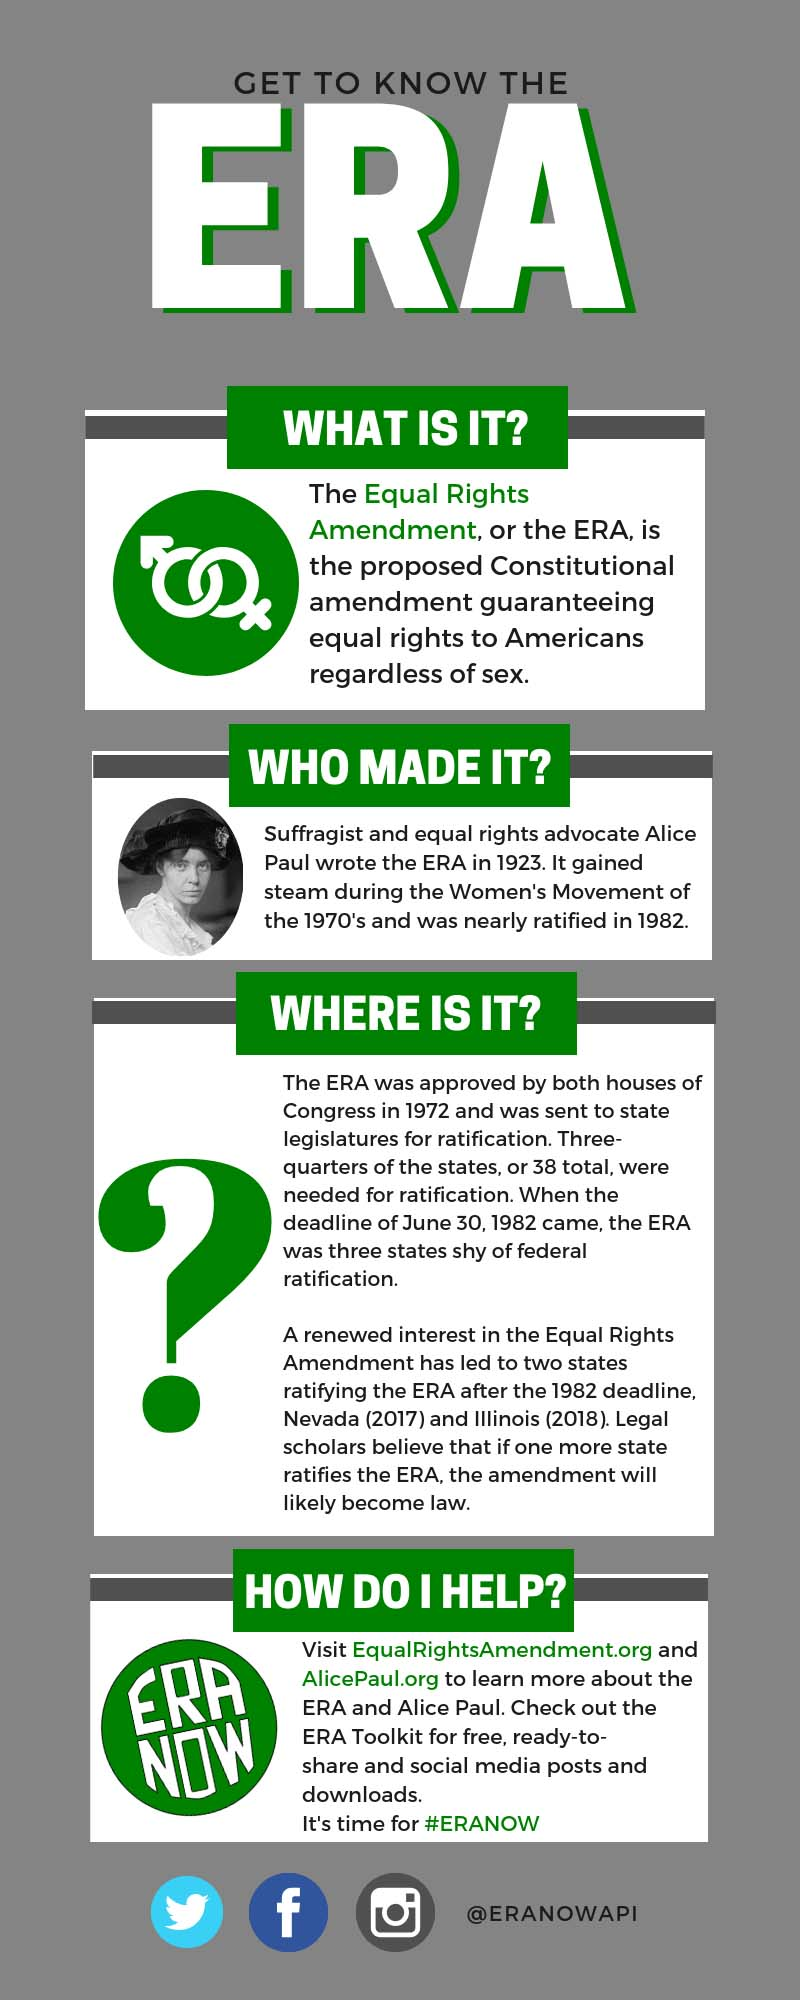 Get to know the ERA